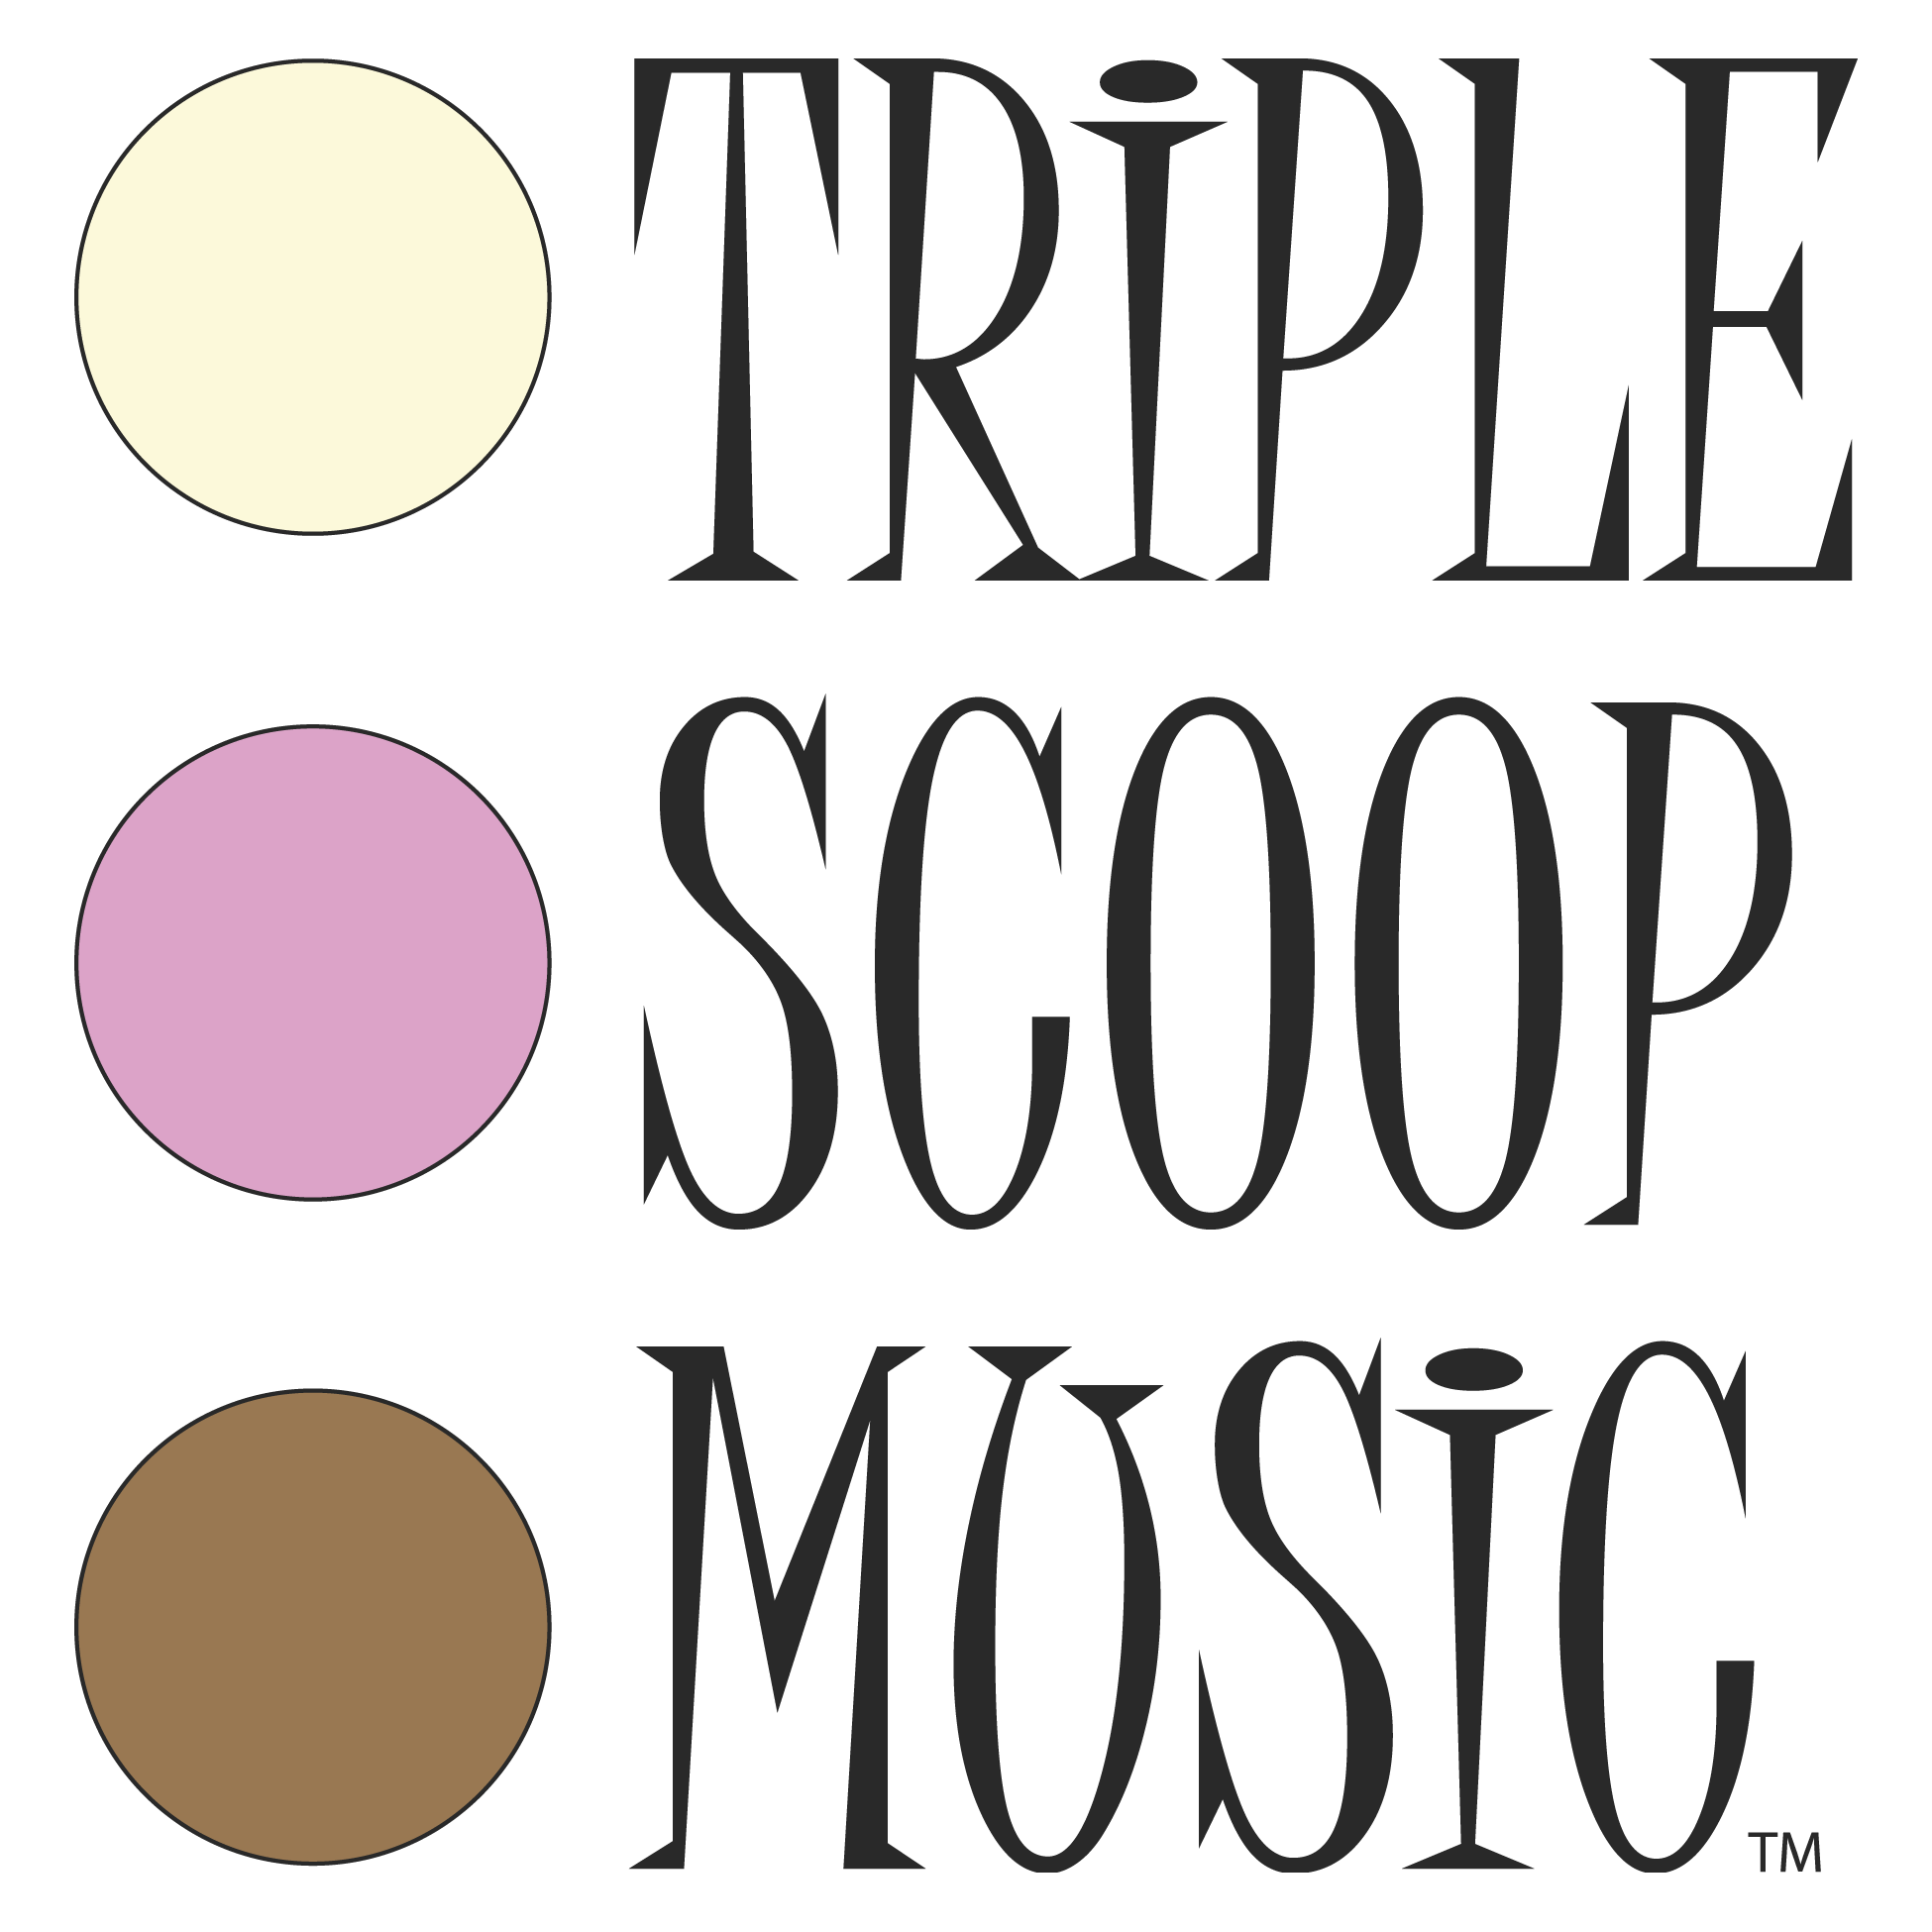 Triple Scoop Music Licensing Certificate